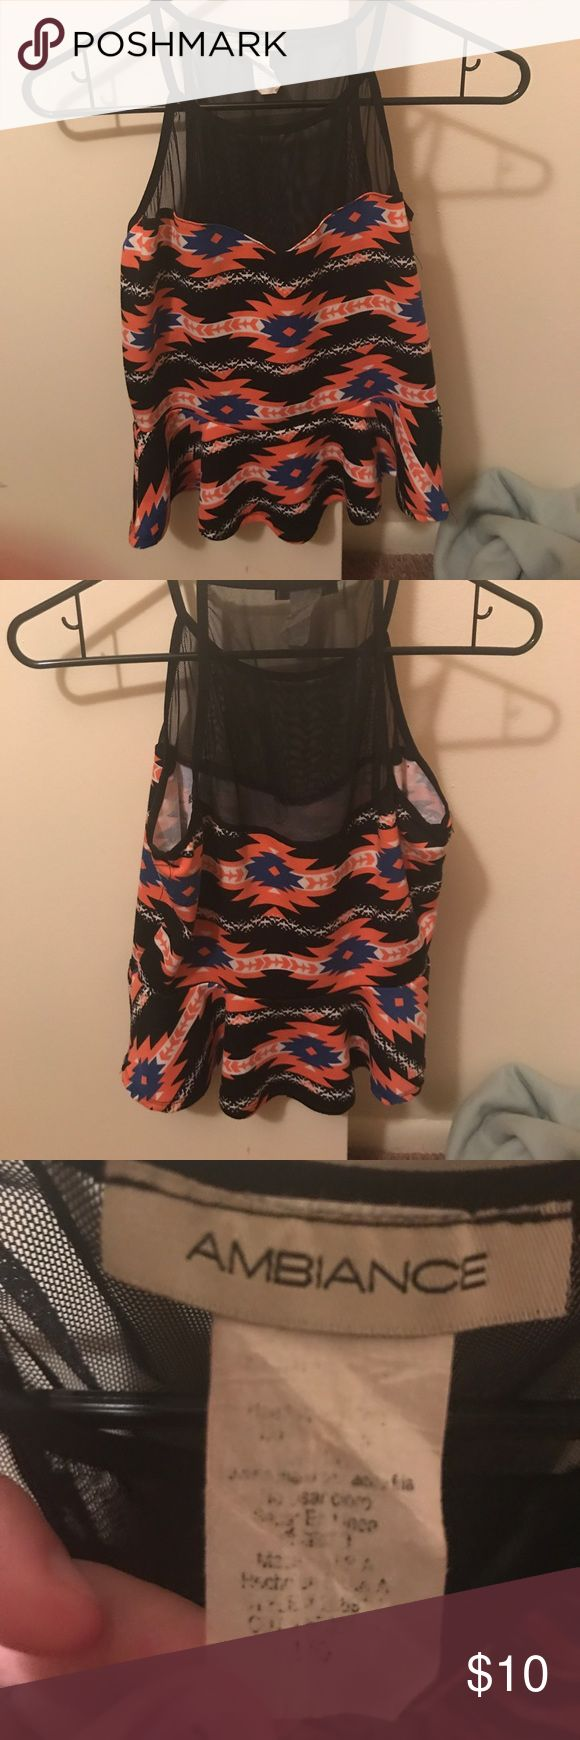 Orange and black Tribal top Cute top. The tag is a little worn but the shirt is in great condition. Ambiance Apparel Tops Tank Tops